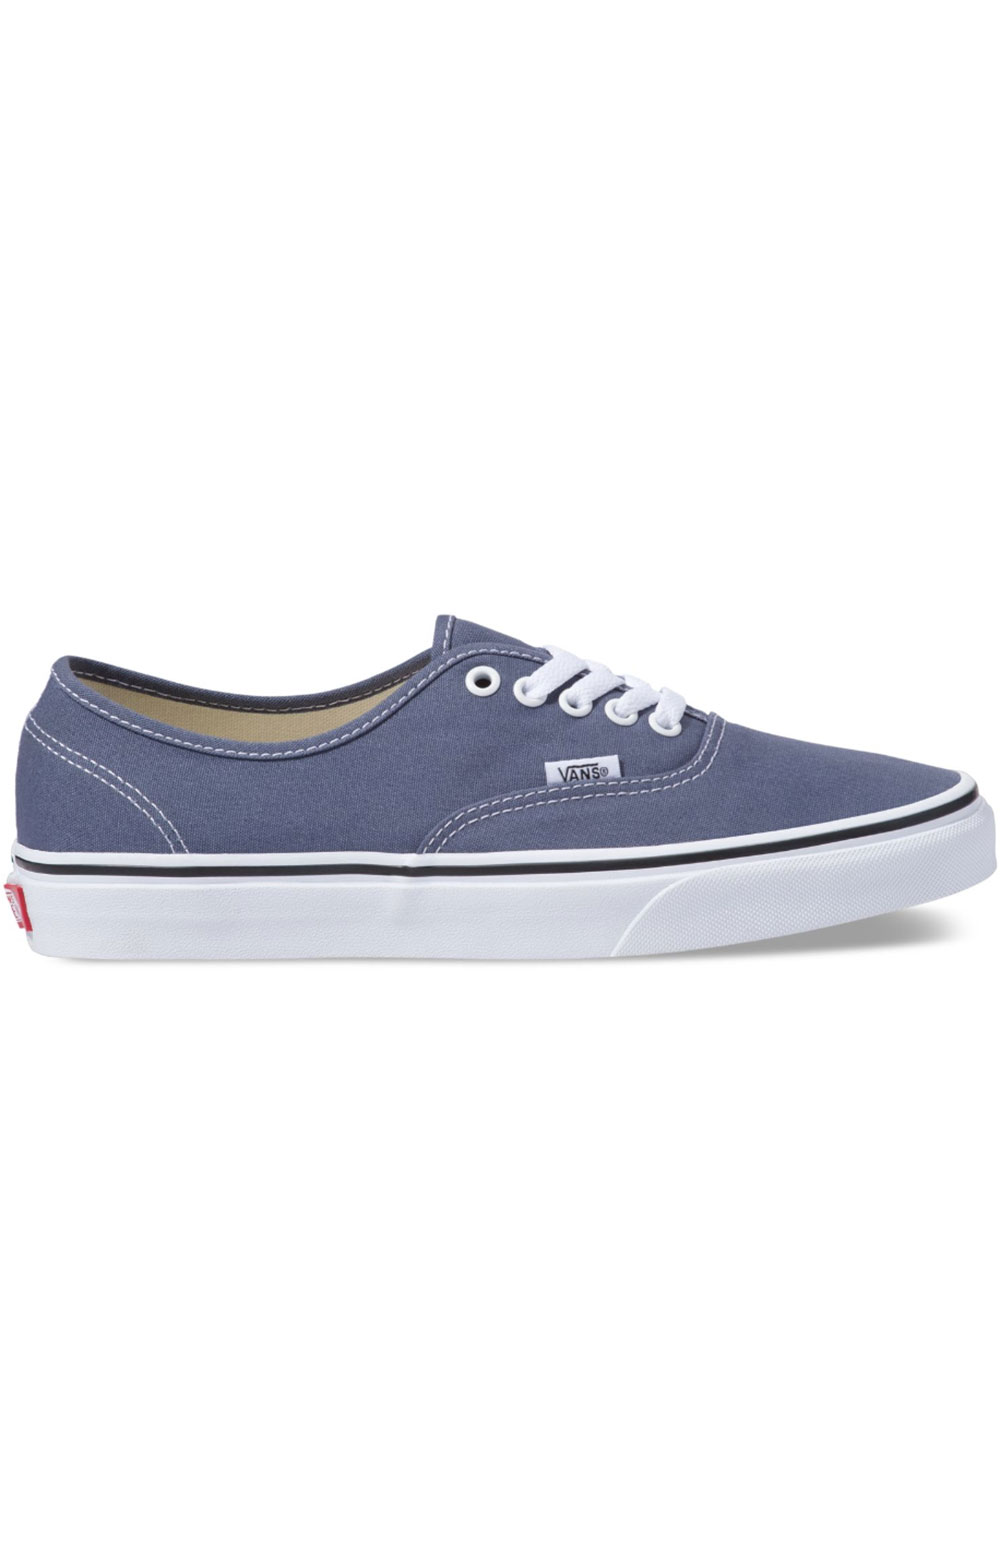 (8EMUKY) Authentic Shoe - Grisaille